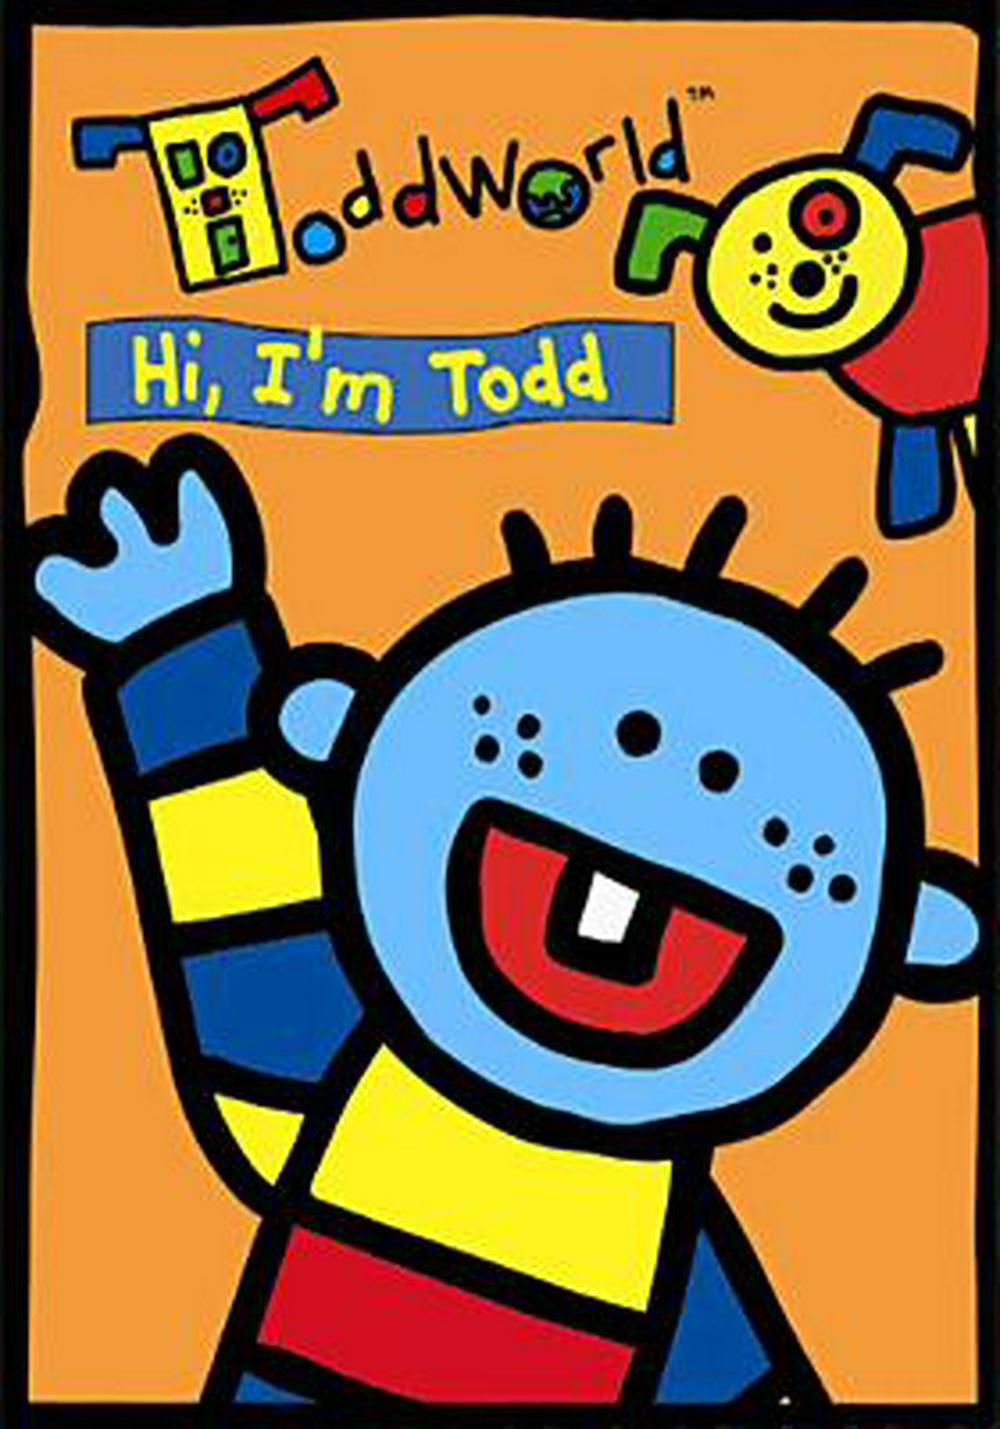 ToddWorld: Hi' I'm Todd (2005 DVD/VHS)